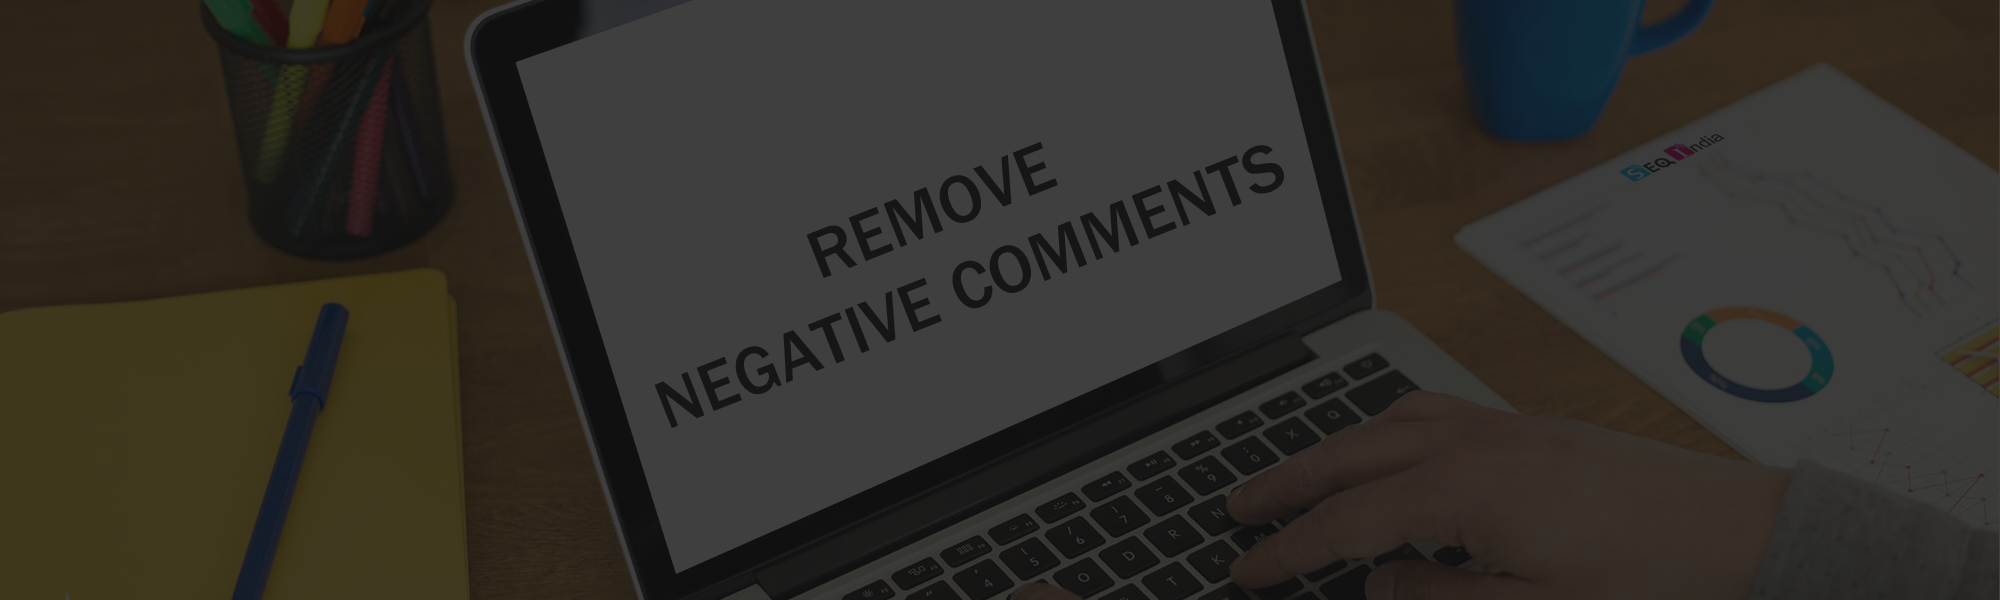 remove negative comments